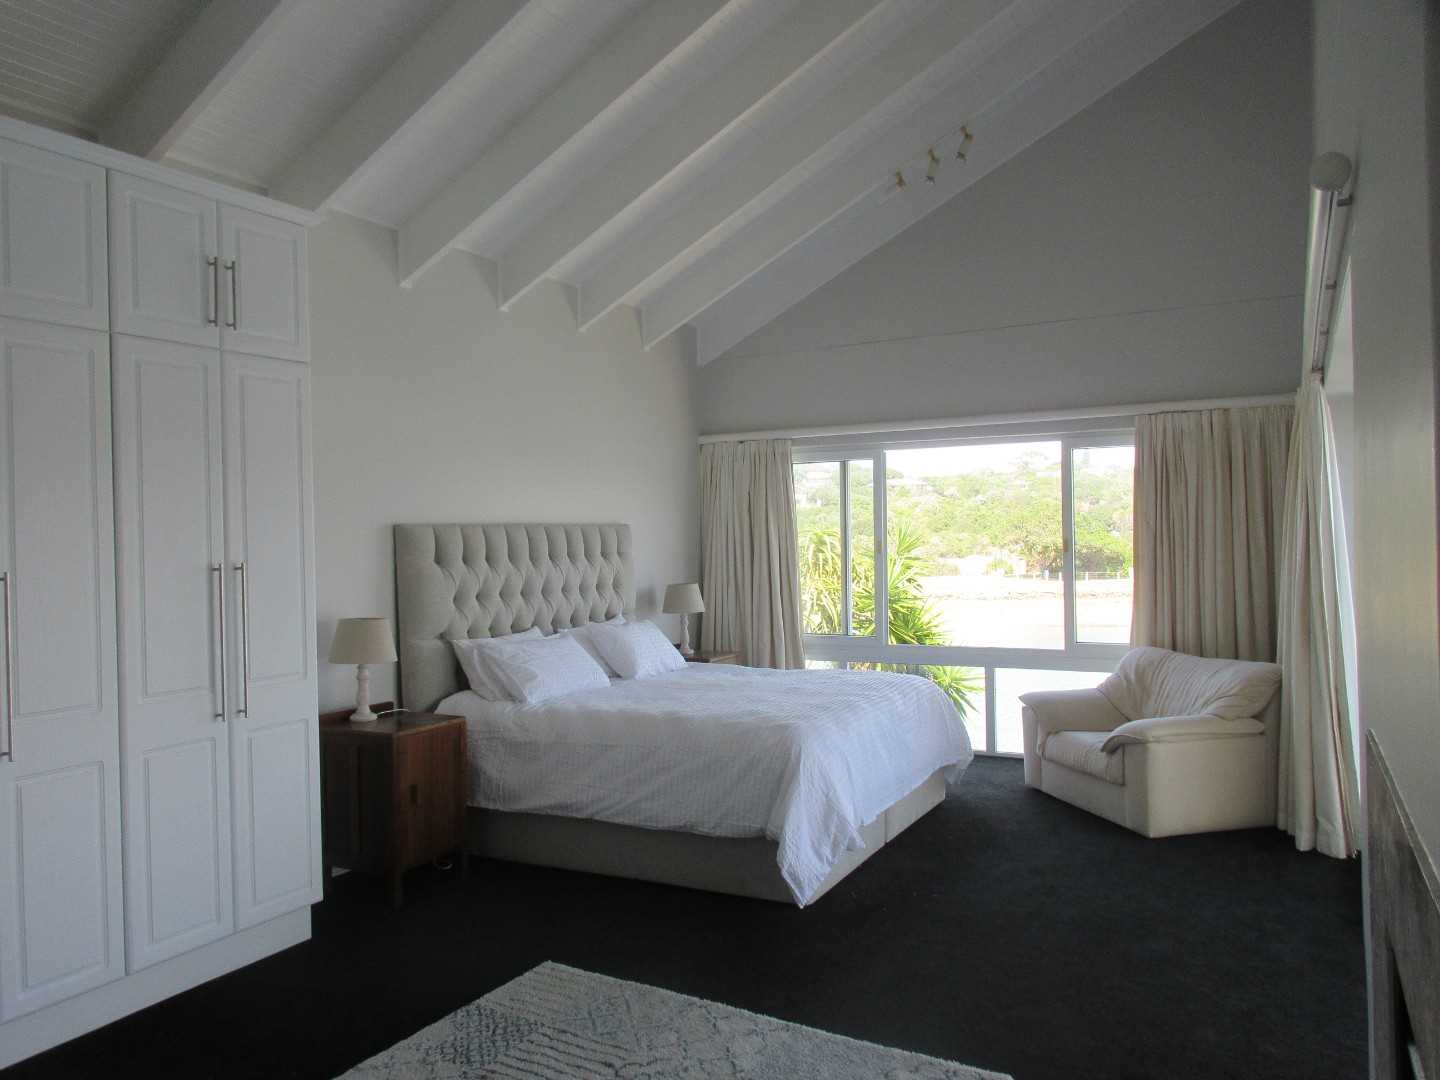 Master bedroom with plenty of built-in cupboards, open fire place, en-suite bathroom and balcony access